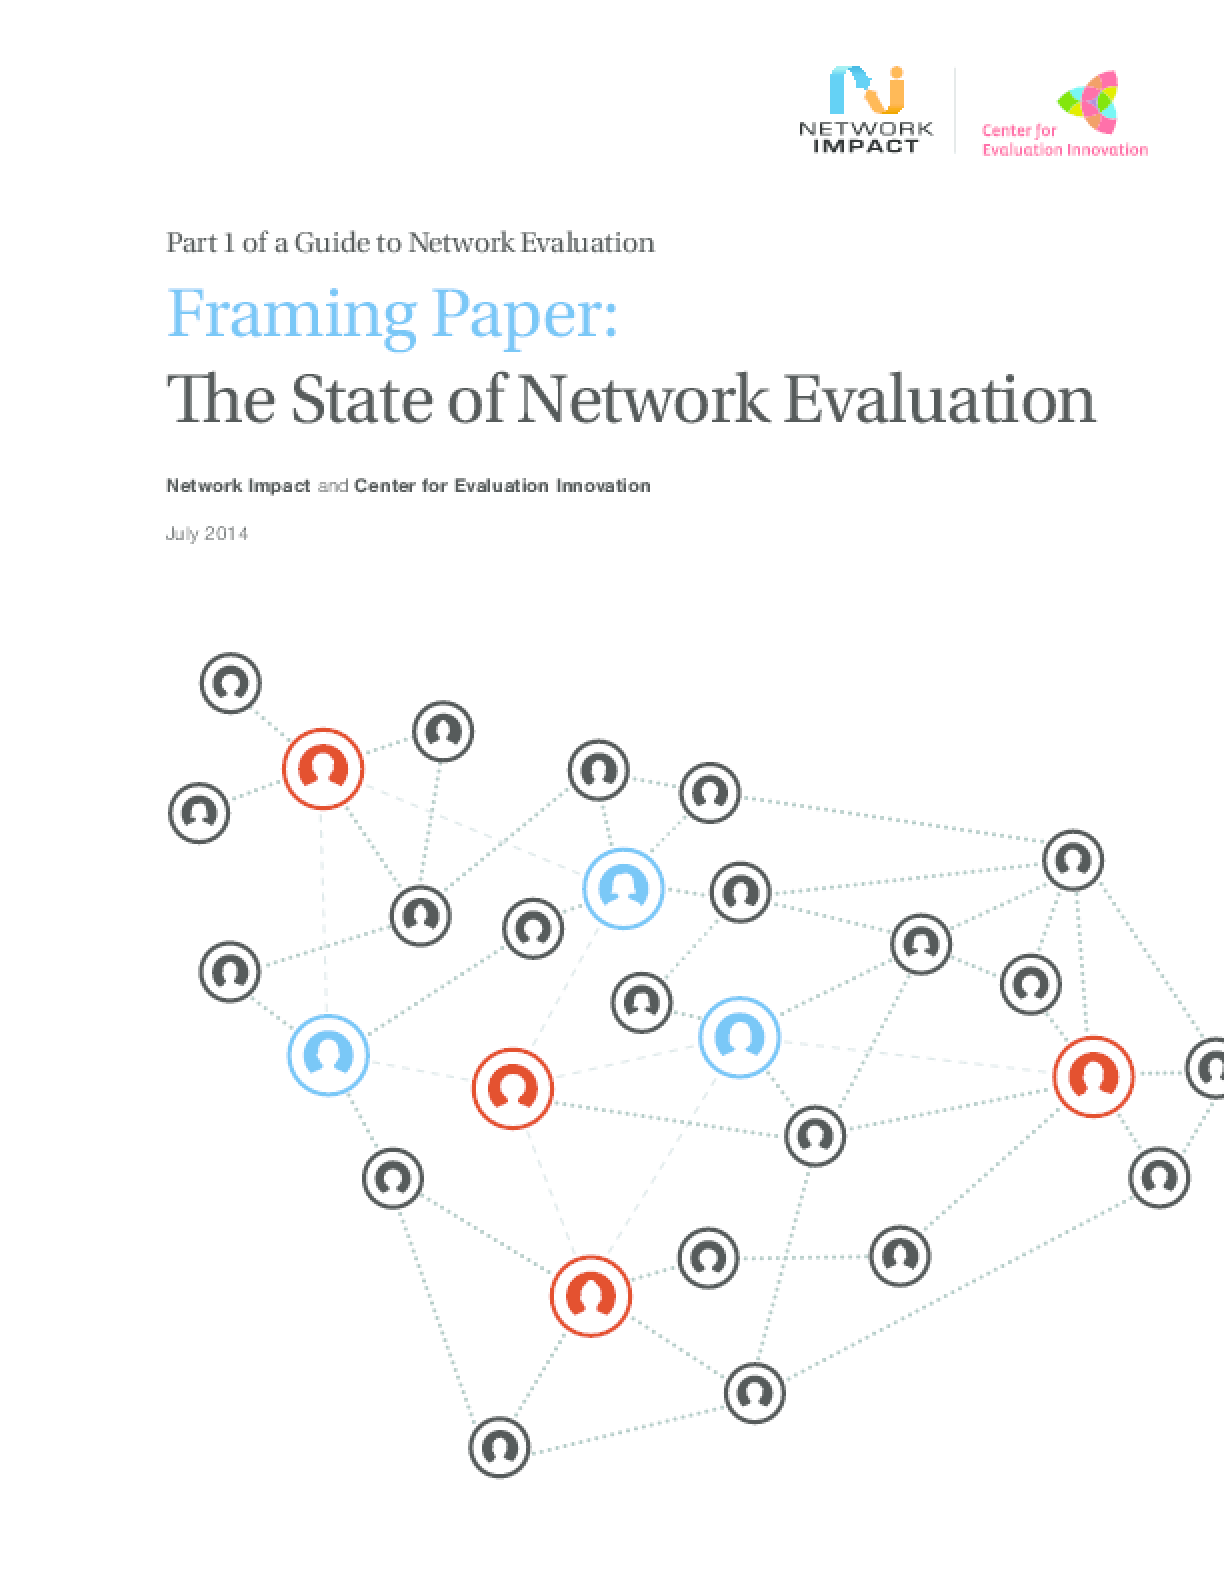 Framing Paper: The State of Network Evaluation